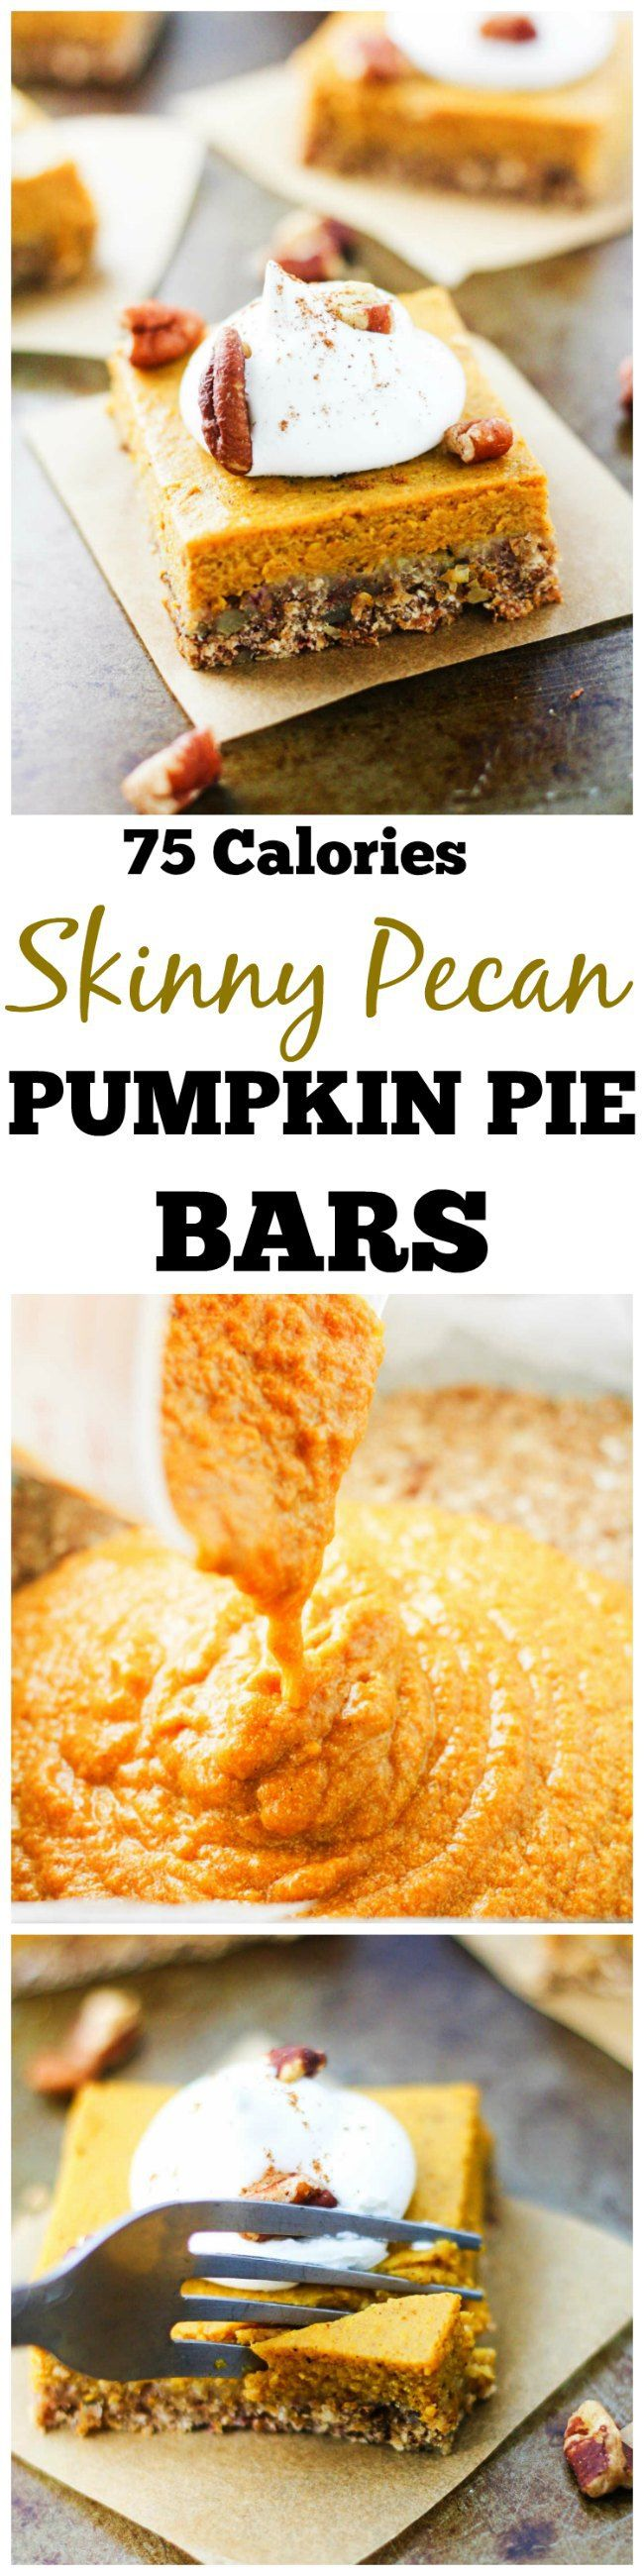 Skinny Pecan Pumpkin Pie Bars - delicious pumpkin bars made with a refined sugar-free pecan crust. Why decide between pumpkin pie and pecan pie when you can have both! www.itscheatdayeveryday.com